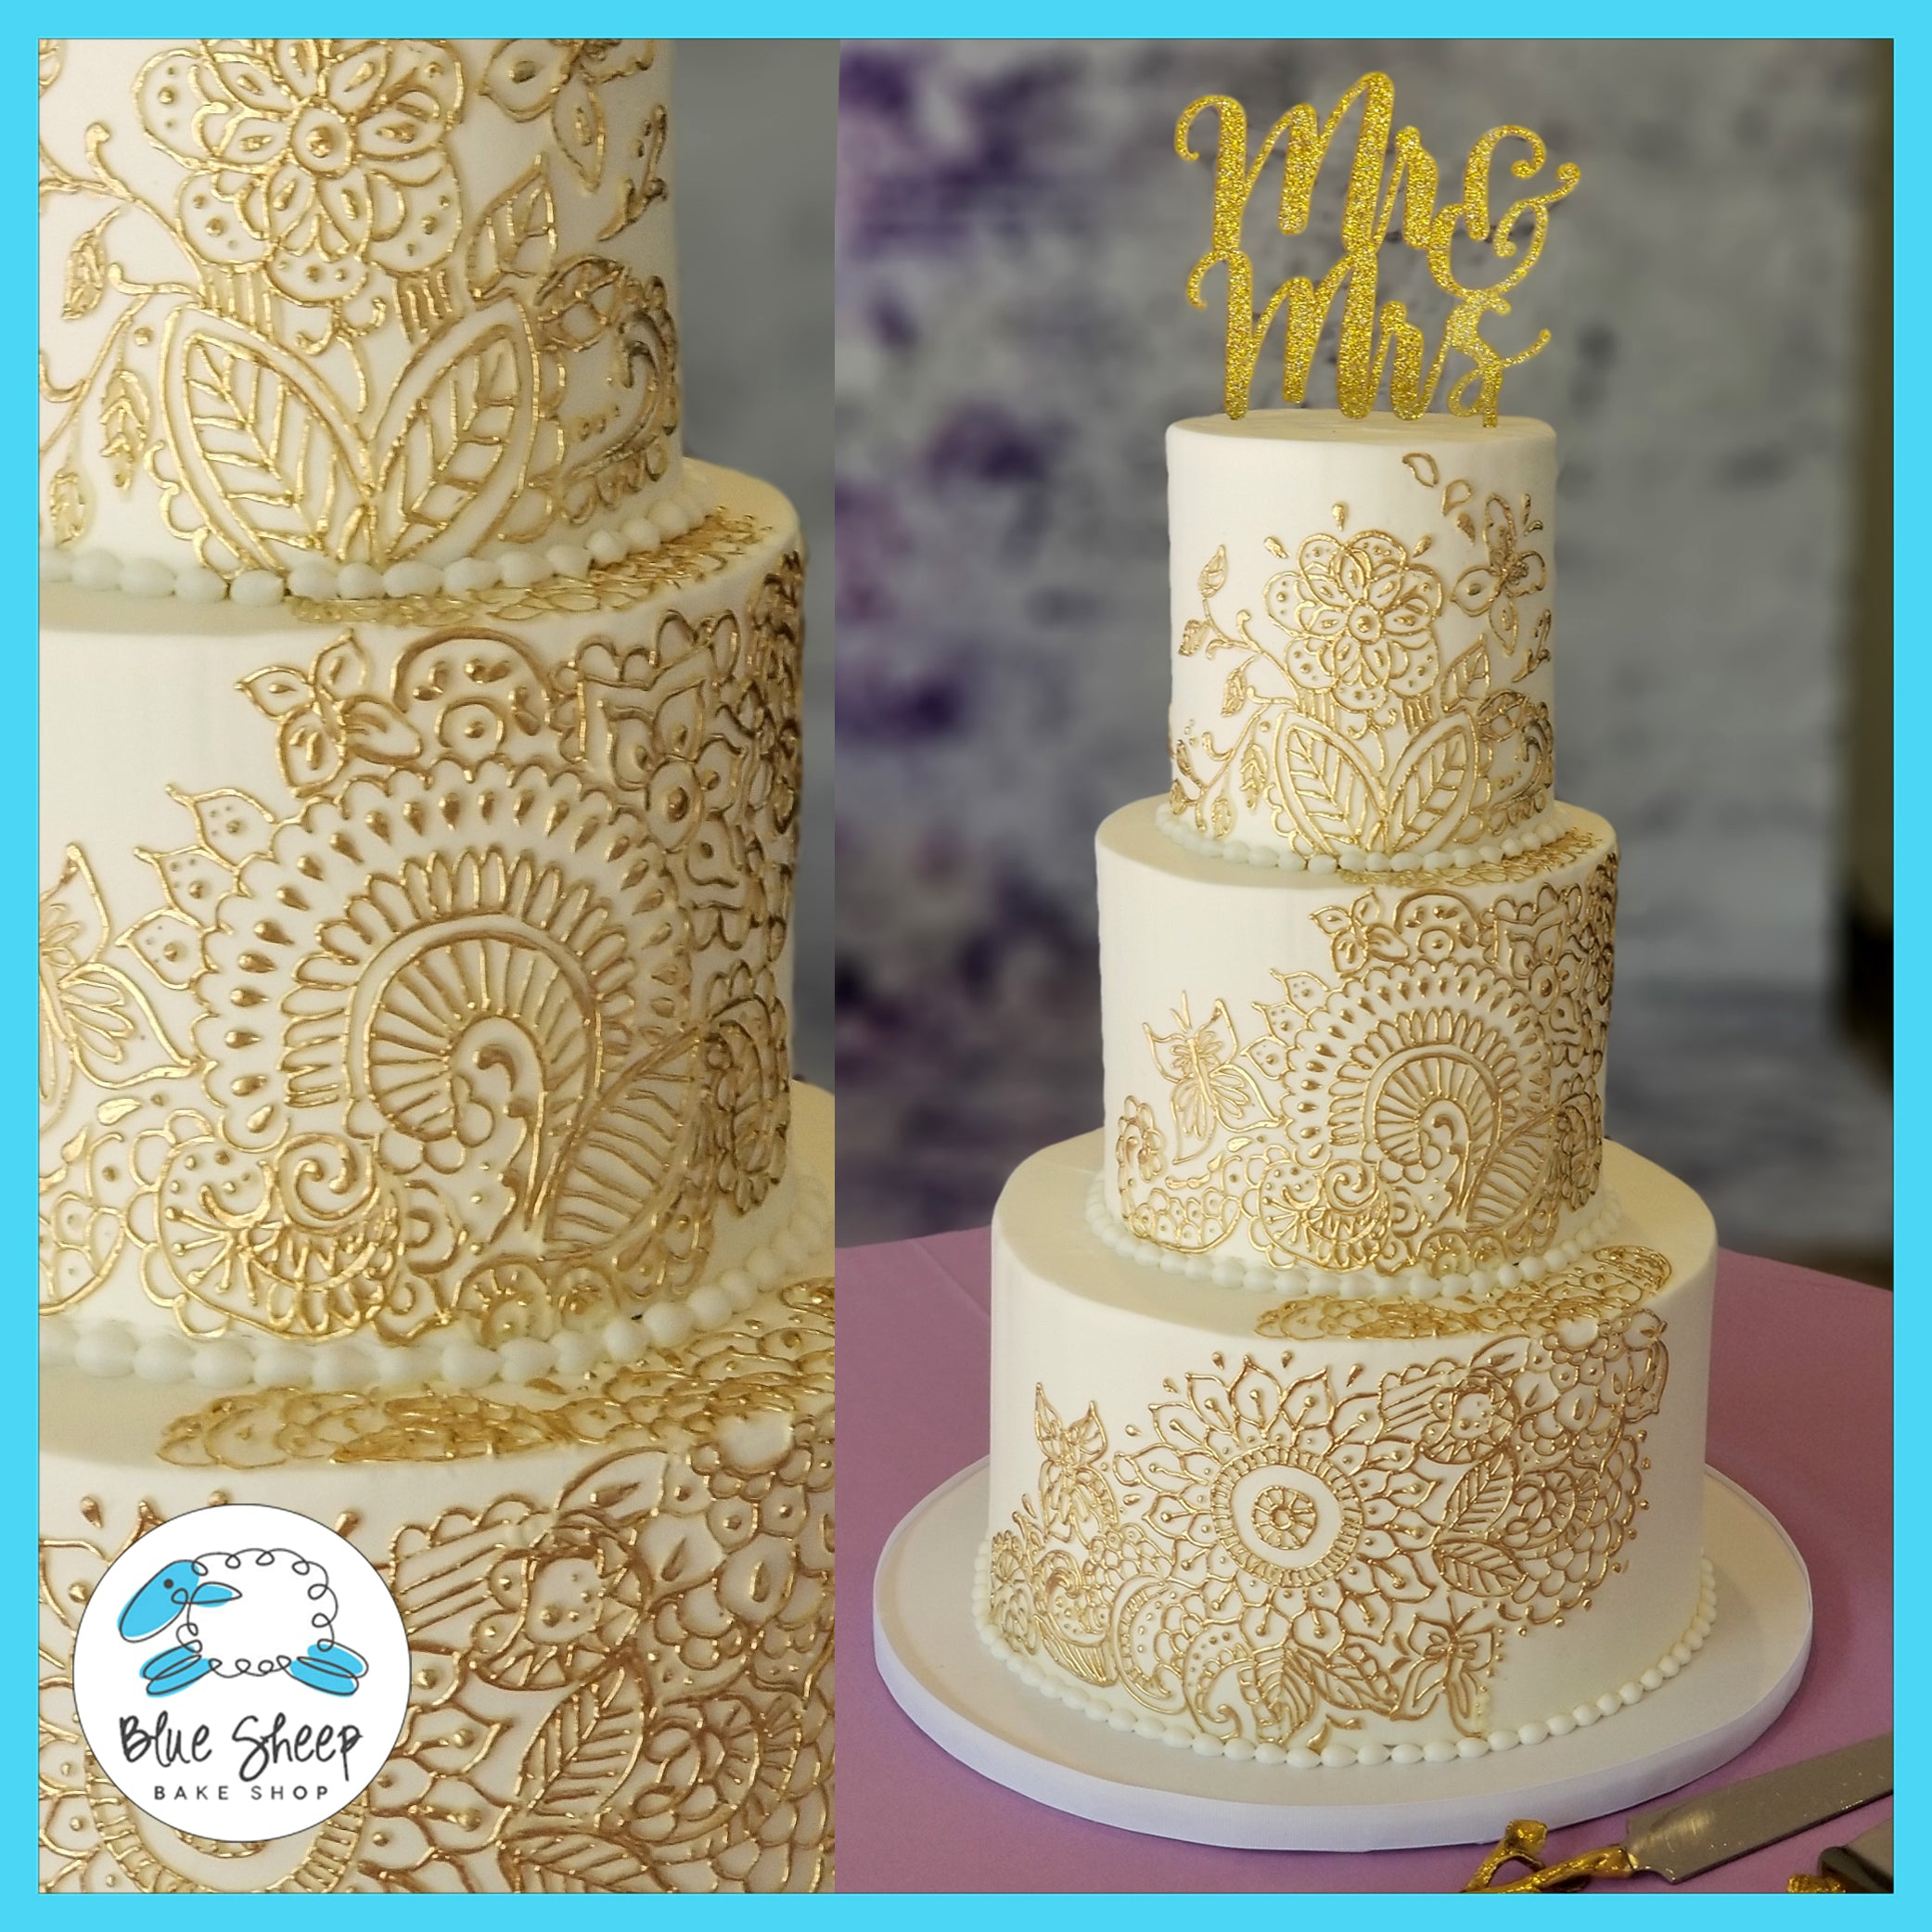 White And Gold Henna Inspired Wedding Cake Nj Blue Sheep Bake Shop